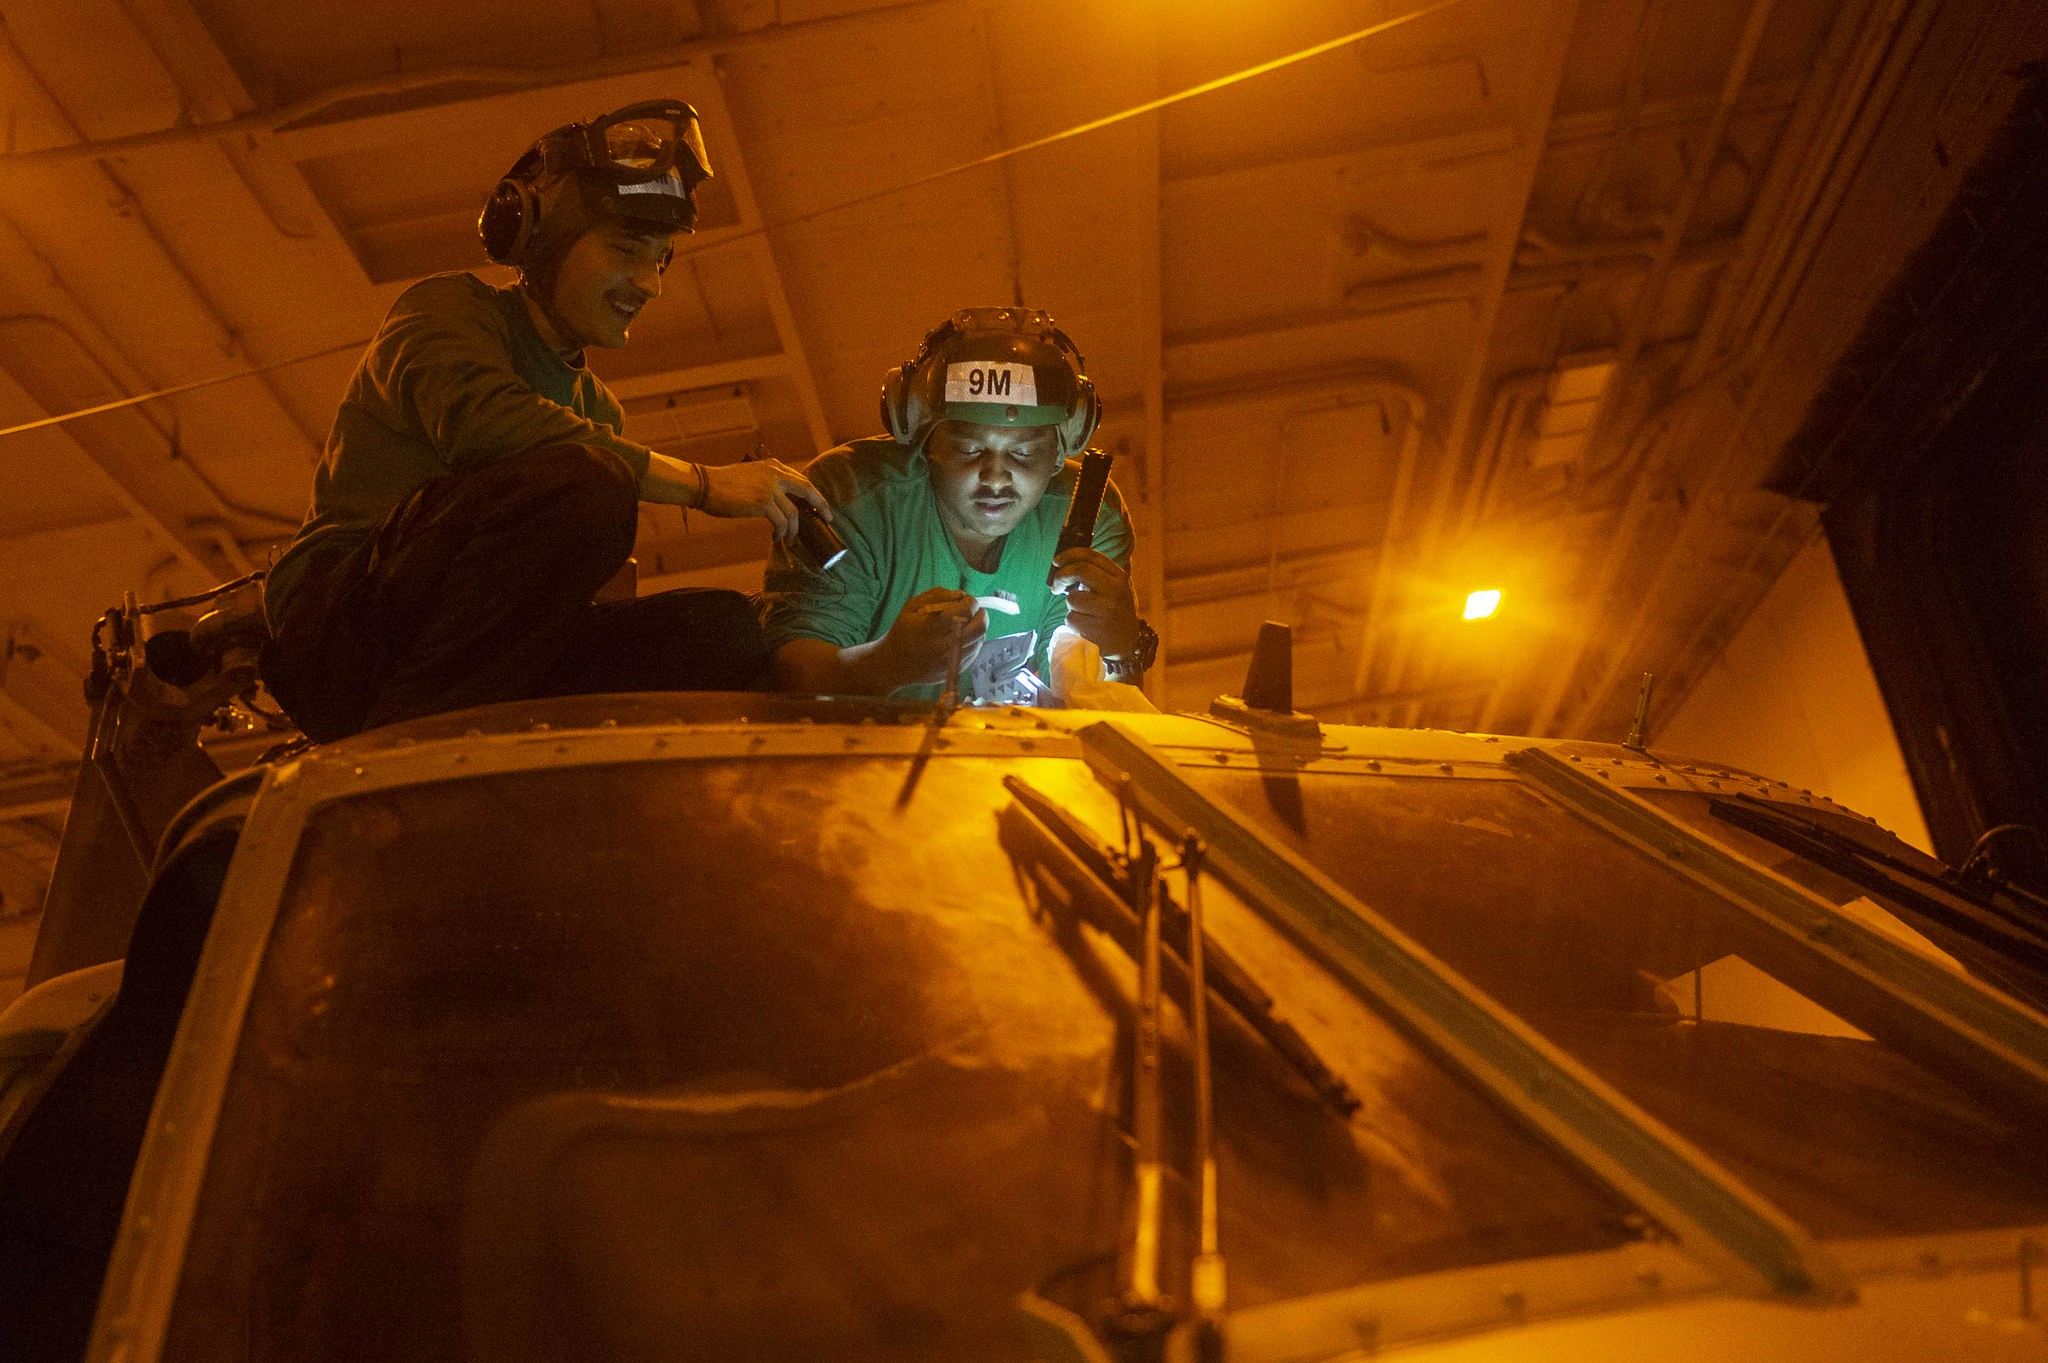 Aviation Structural Mechanic 2nd Class Daniel Rivera and Aviation Structural Mechanic 3rd Class Anthony Morales remove corrosion on the main rotor head of an MH-60S Seahawk helicopter in the hangar bay of the aircraft carrier USS Harry S. Truman (CVN 75) on Jan. 2, 2020, in the Arabian Sea, Jan. 2, 2020. (Mass Communication Specialist 3rd Class Megan Wollam/Navy)